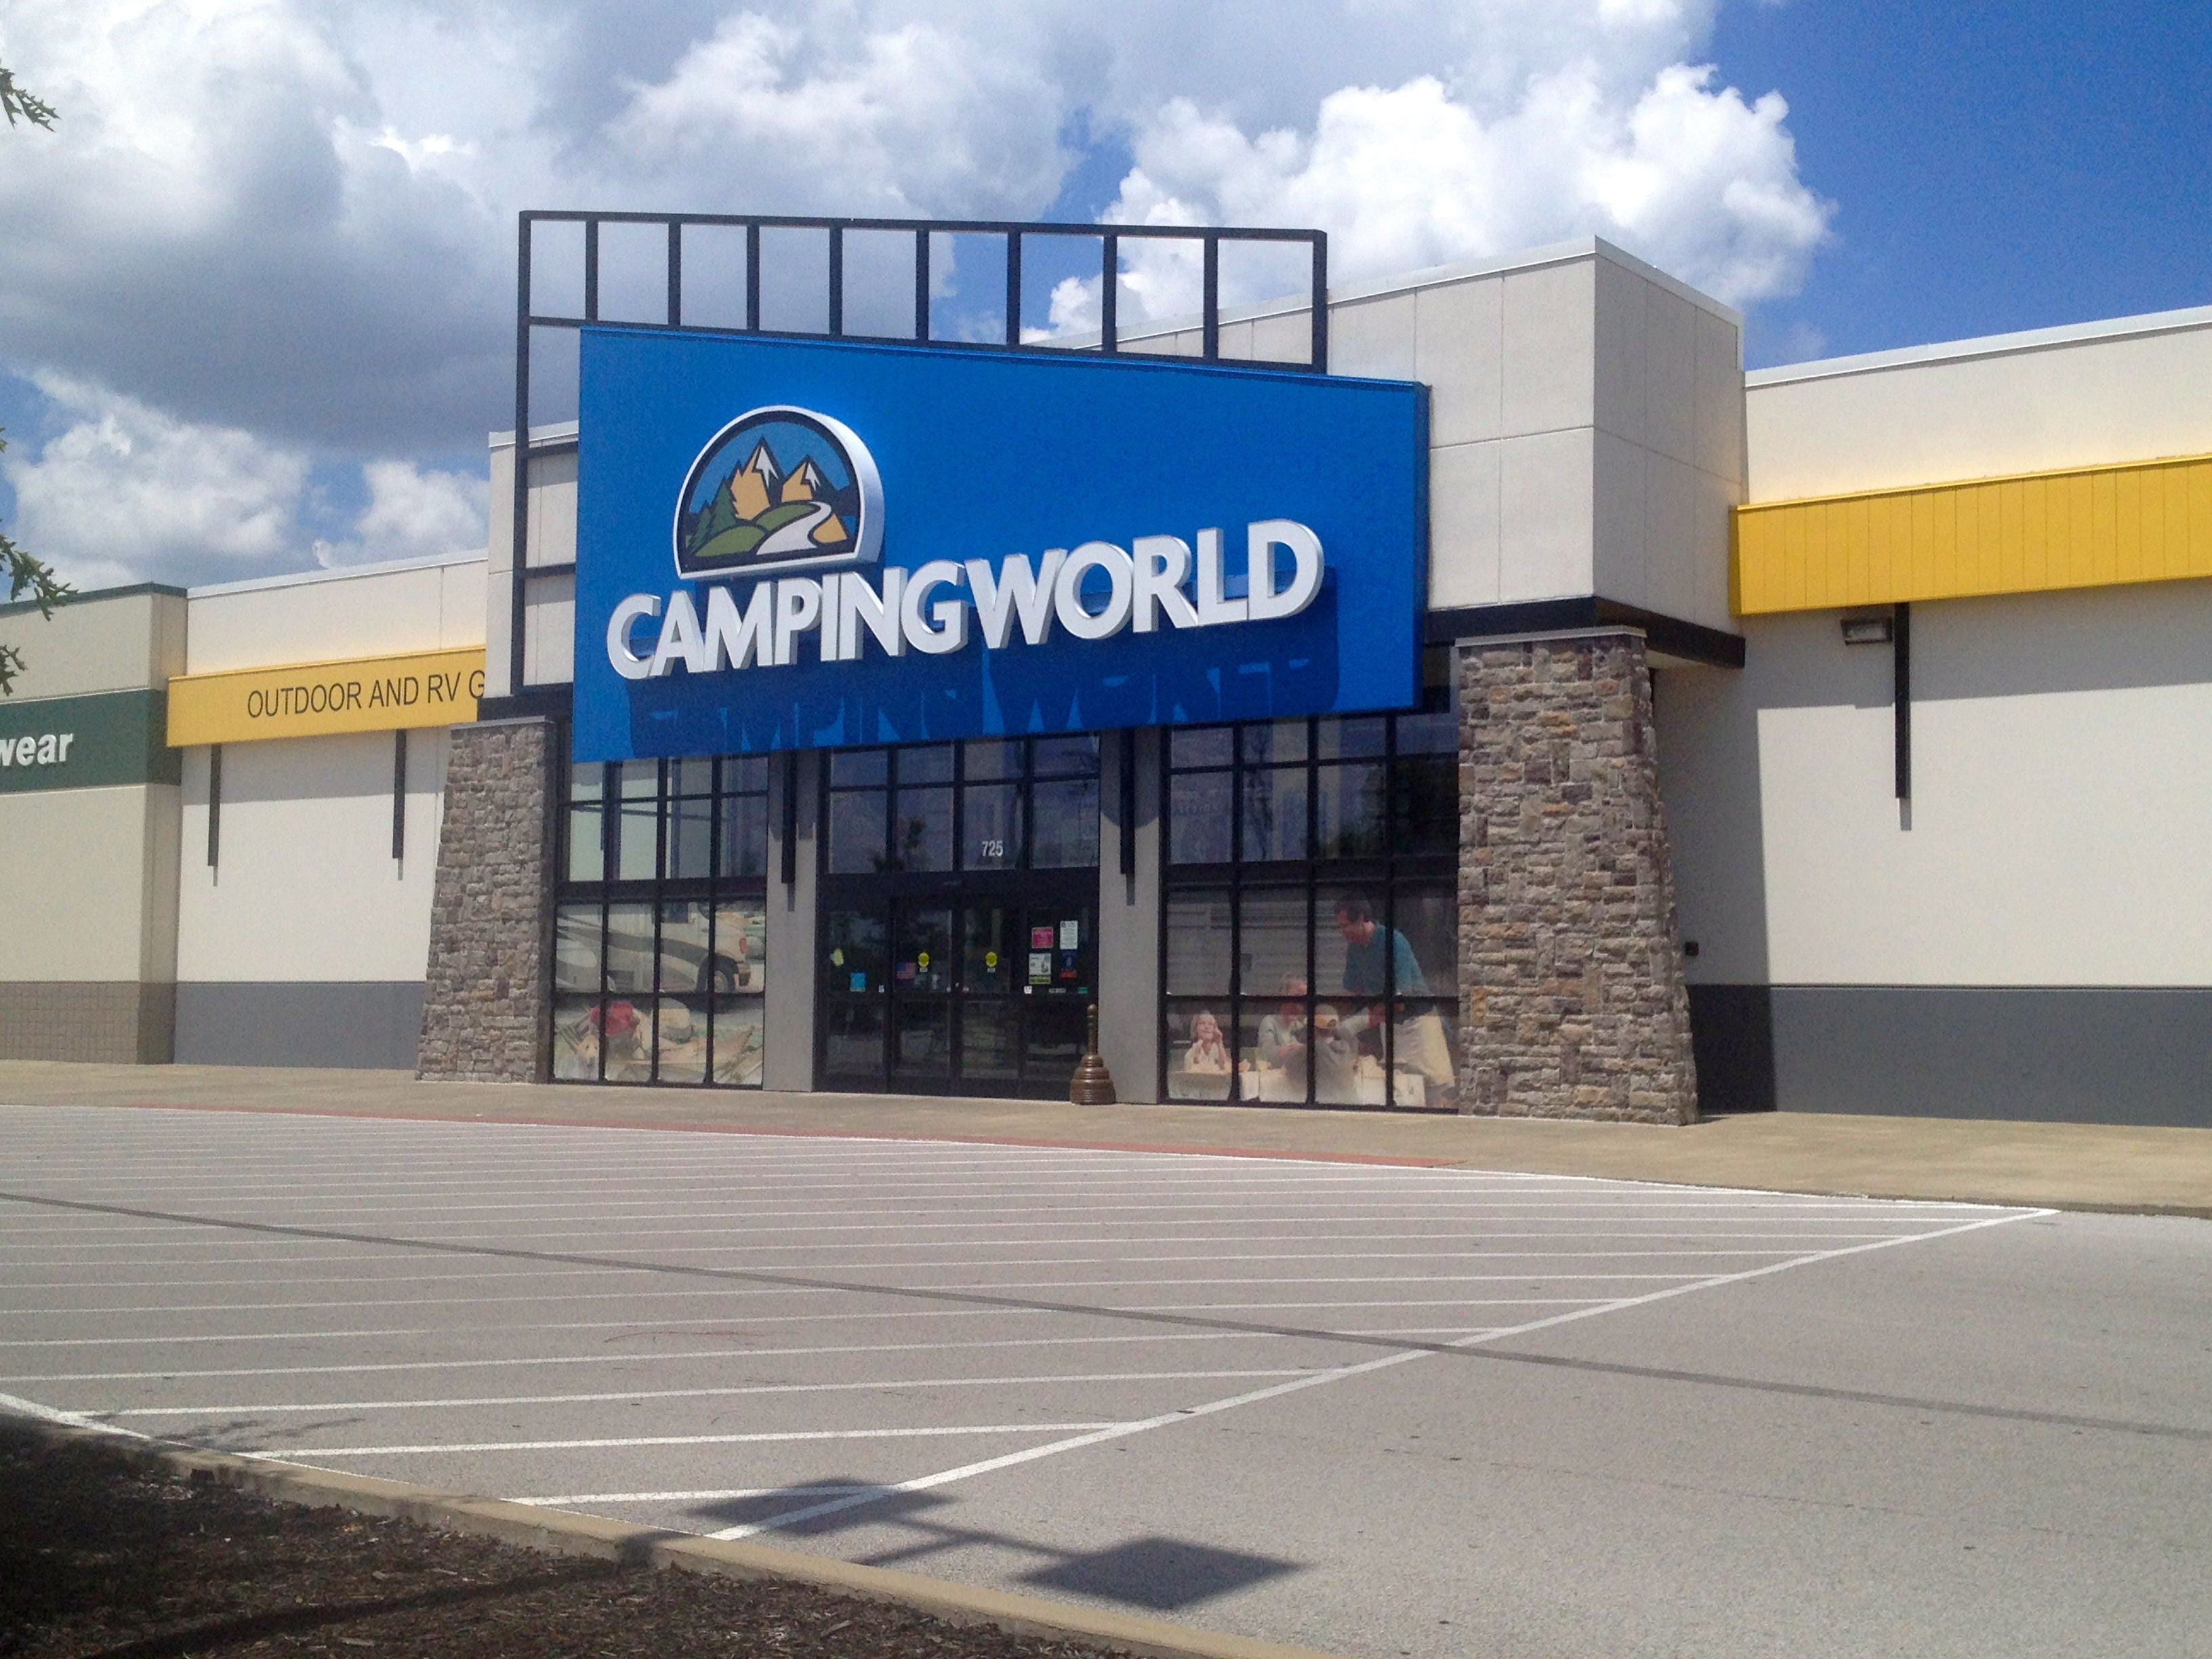 Camping World Raises New Worries About RV Growth